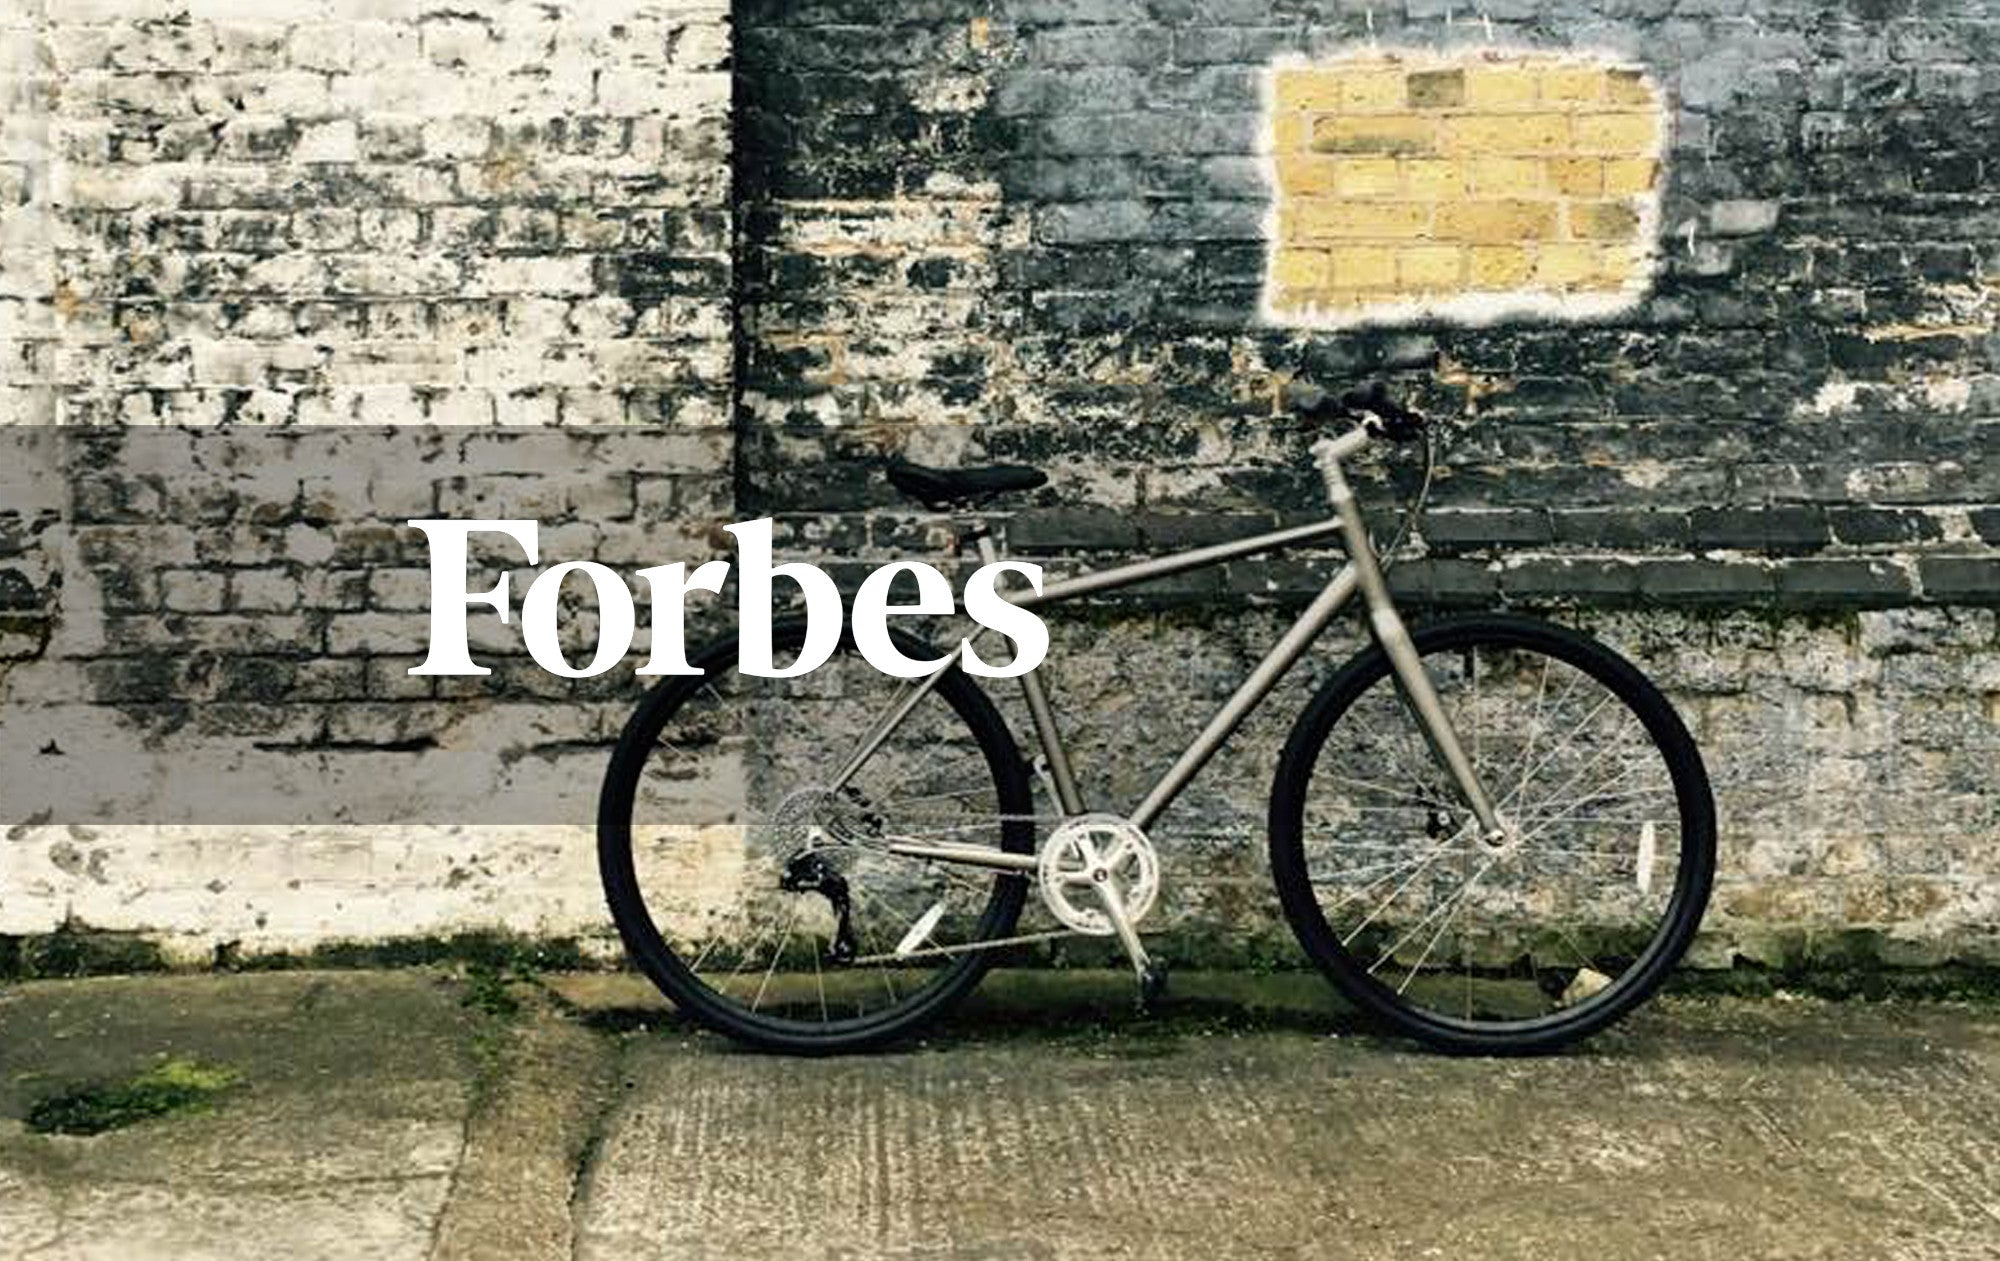 Forbes - How This Niche Retailer Reinvented The Online Customer Experience, One Bike At A Time